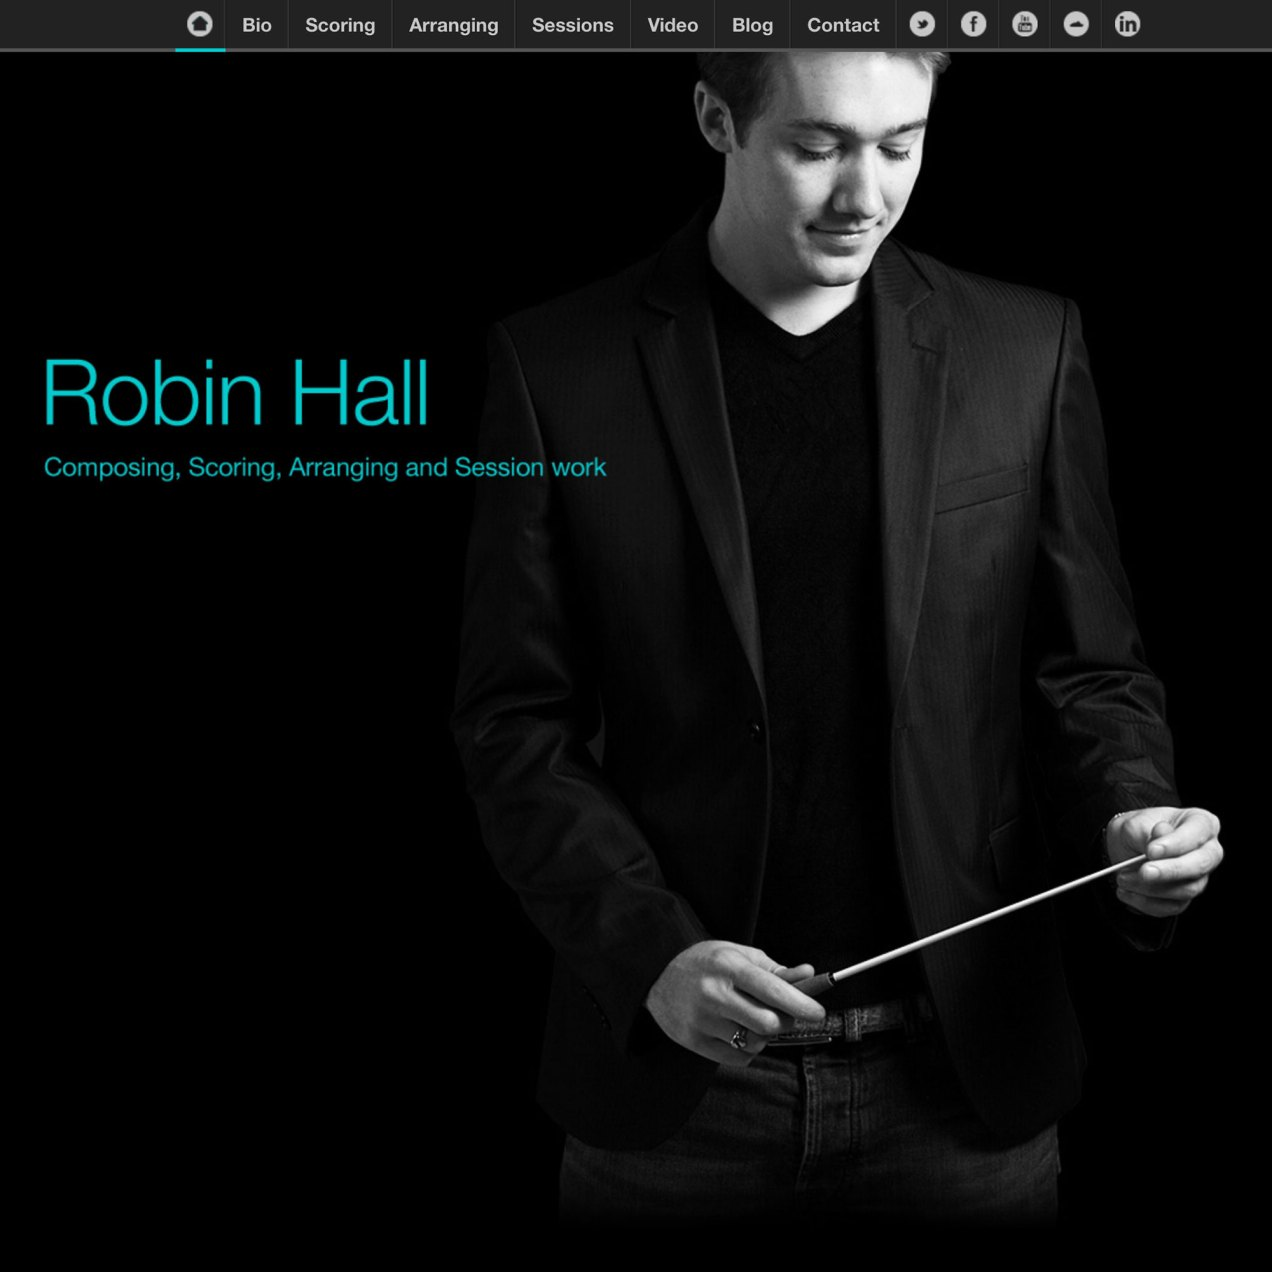 robin_hall_01